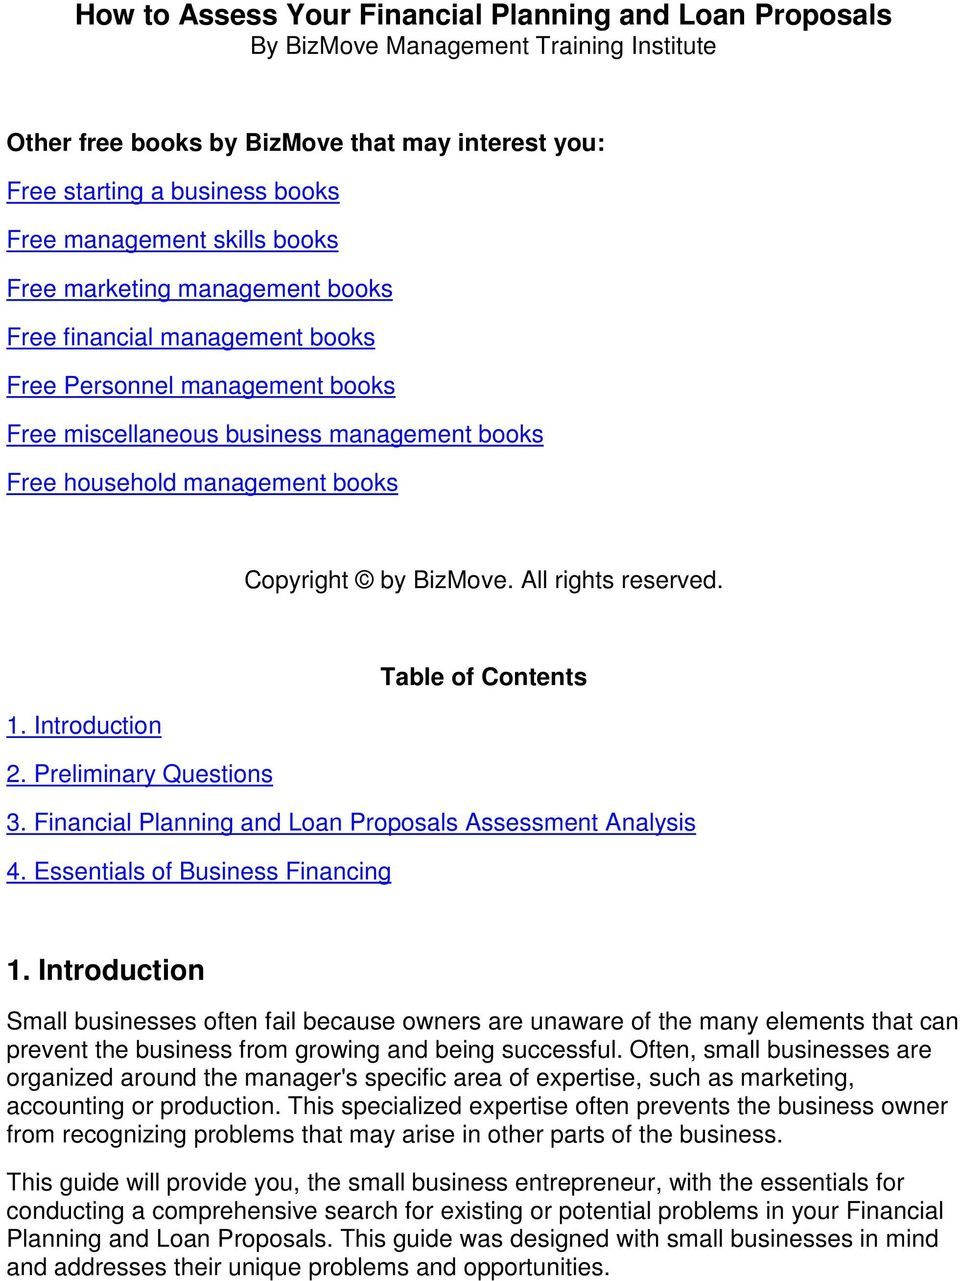 BizMove. All rights reserved. Table of Contents 1. Introduction 2. Preliminary Questions 3. Financial Planning and Loan Proposals Assessment Analysis 4. Essentials of Business Financing 1.